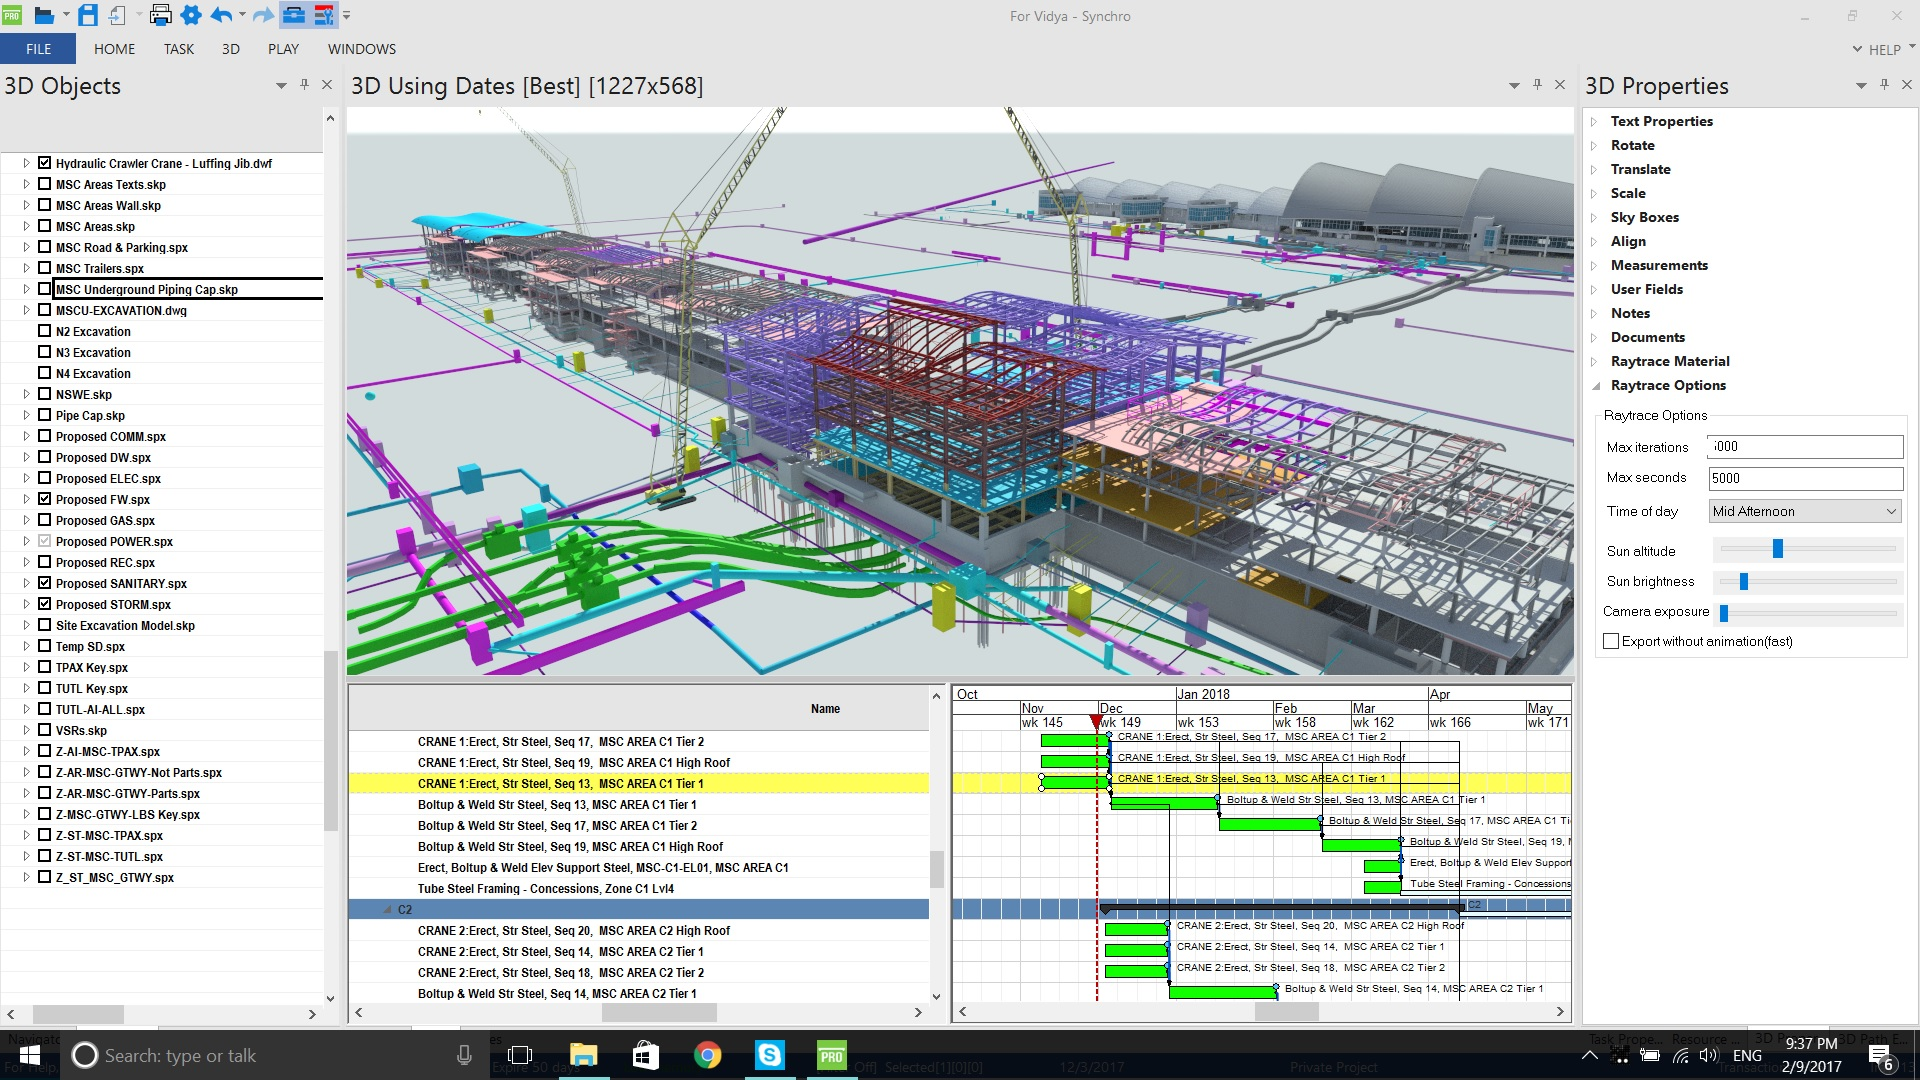 Bentley Systems acquires Synchro Software to extend digital